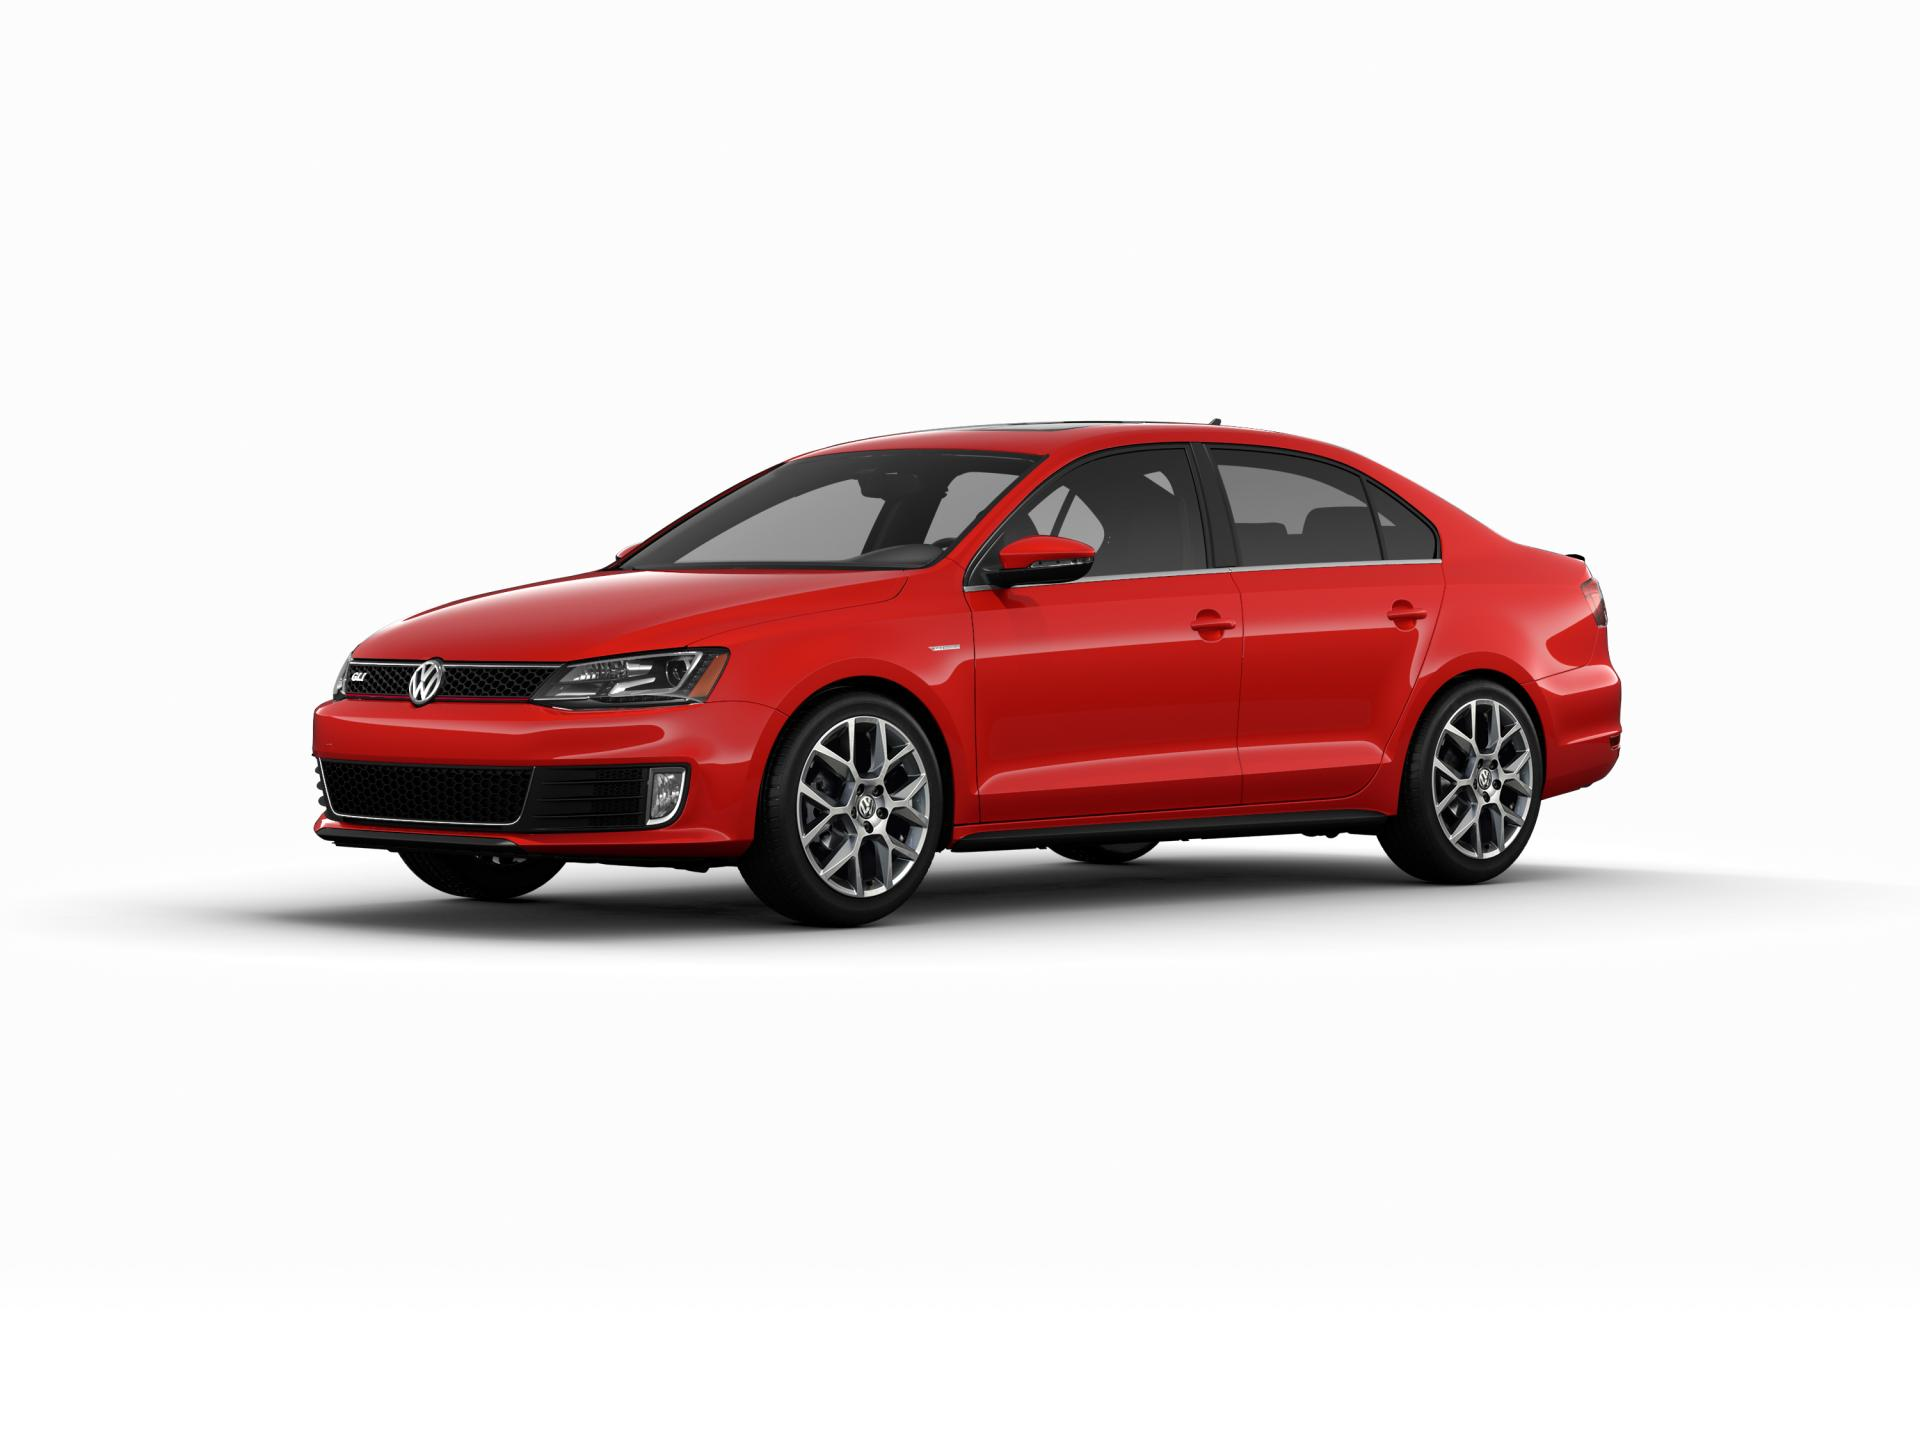 2014 volkswagen jetta gli edition 30 news and information. Black Bedroom Furniture Sets. Home Design Ideas